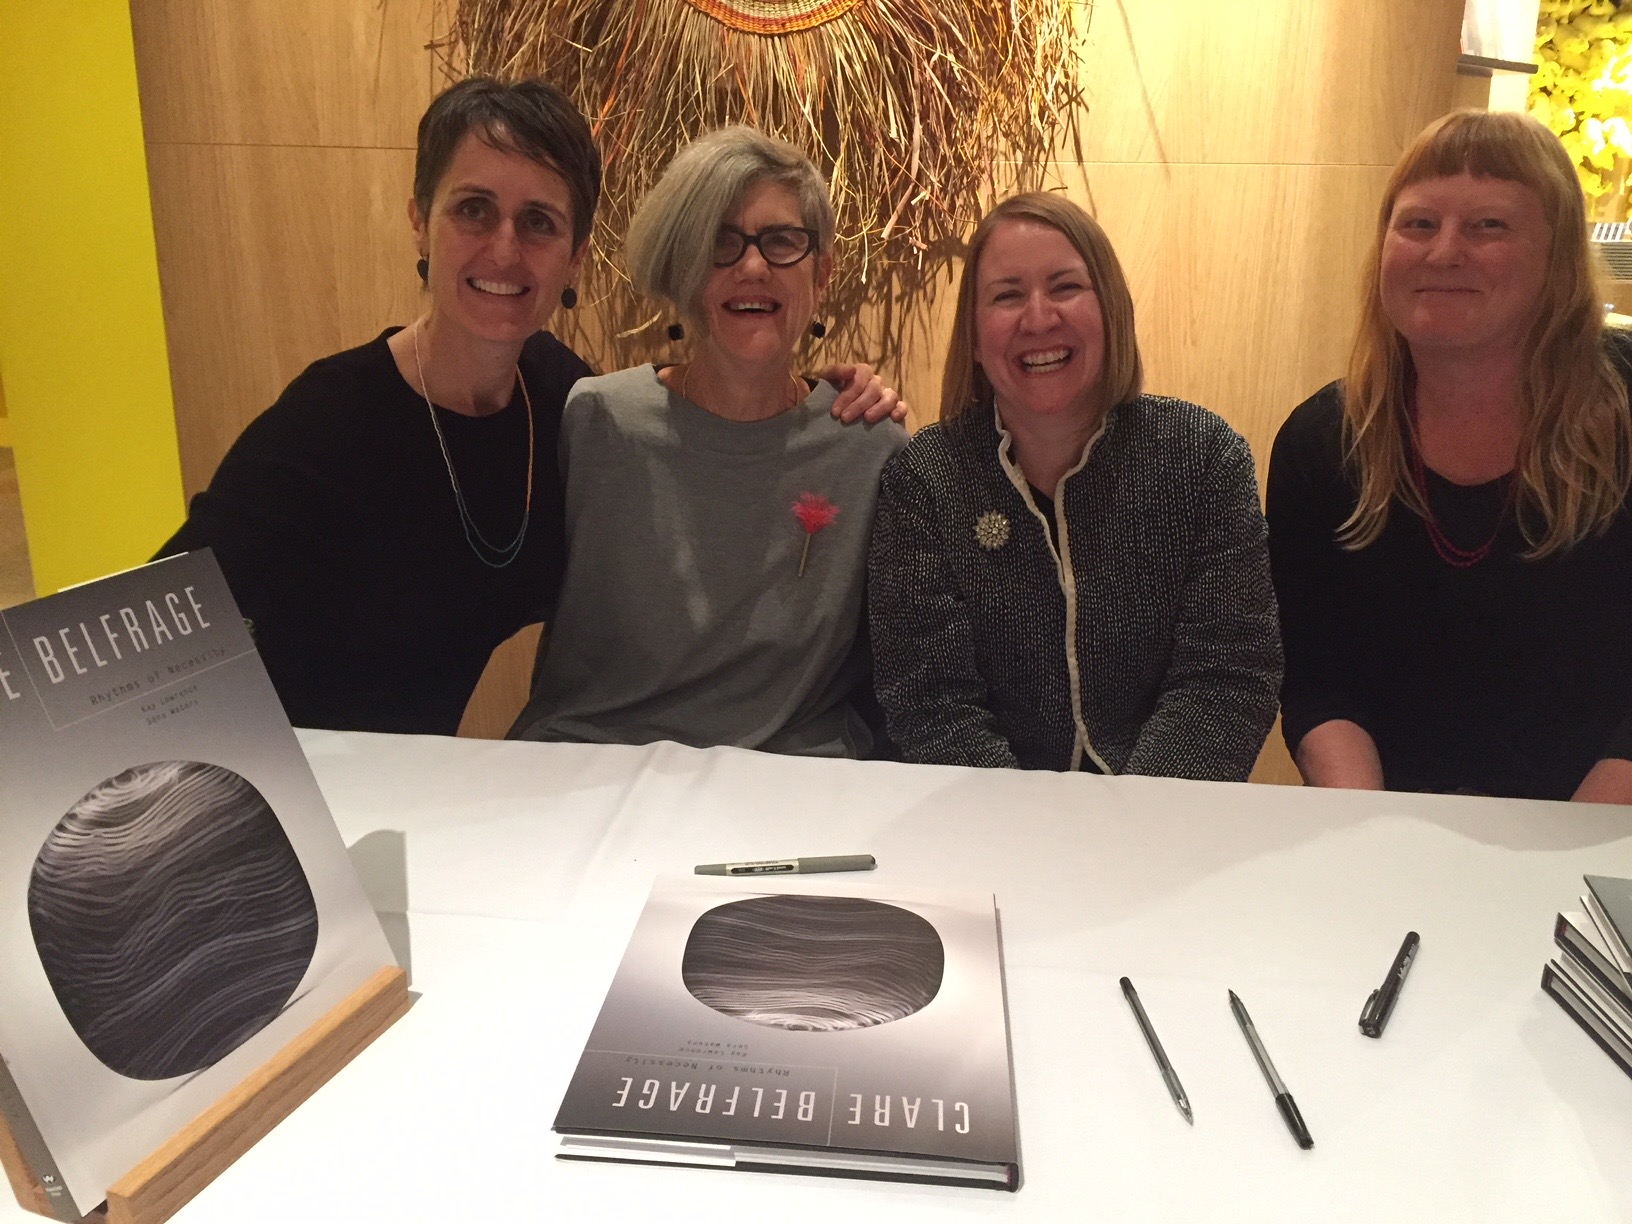 Book launch of Rhythms of Necessity, l-r Clare Belfrage, Kay Lawrence, Sera Waters and Kirsty Darlaston, Art Gallery of South Australia, July 2018